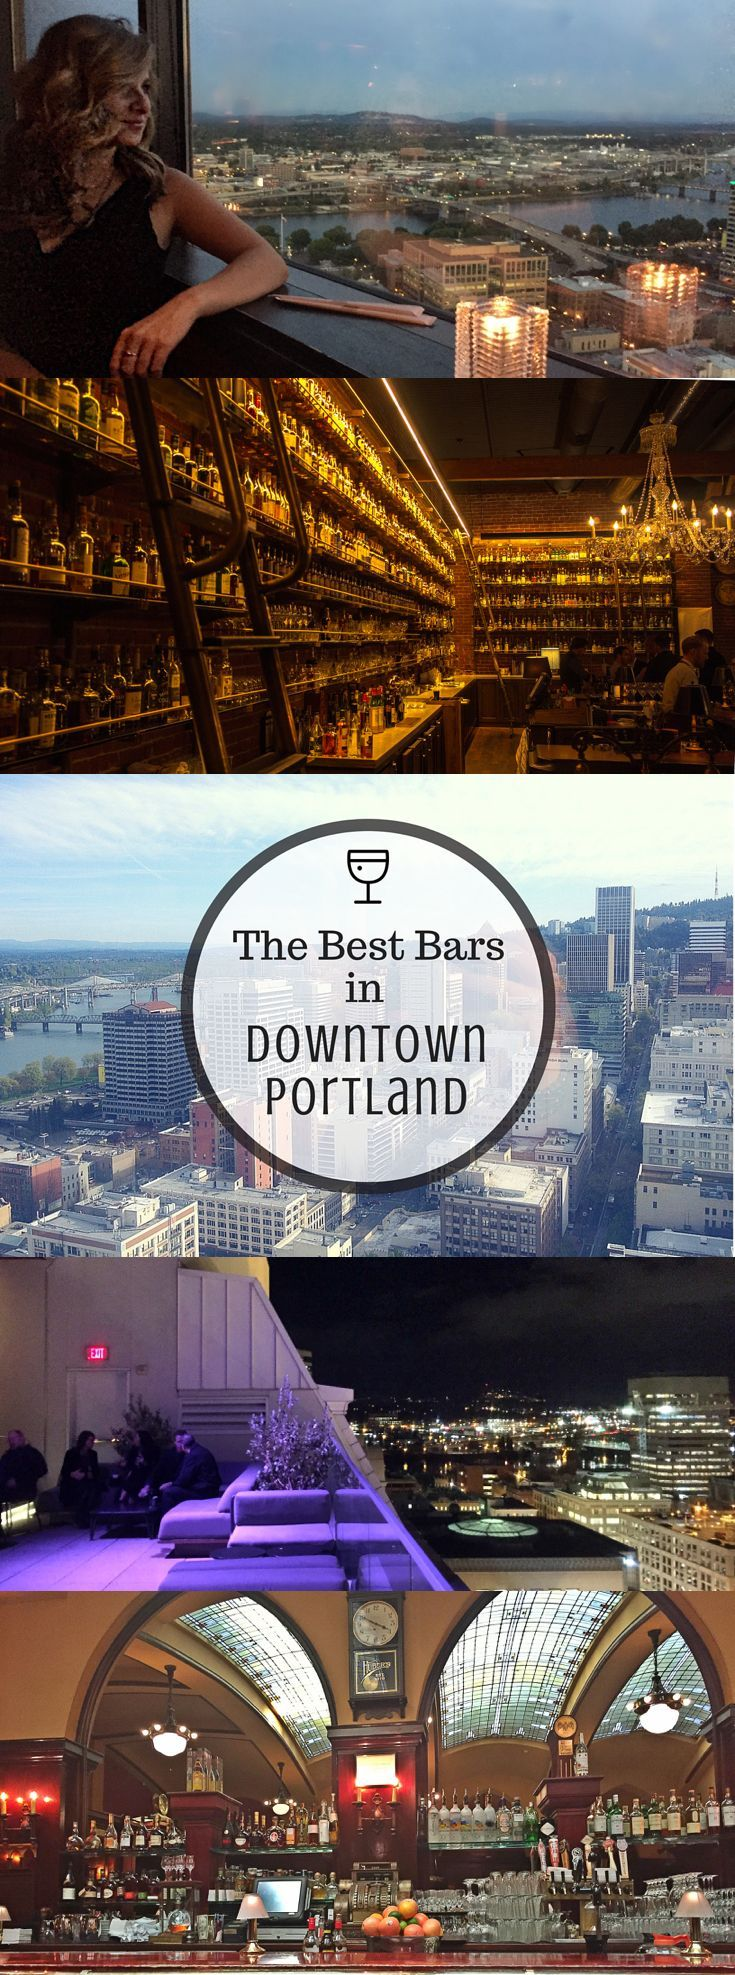 The drink options in downtown Portland, Oregon are as diverse and unique as the city itself. Whether you're looking for a low-cost happy hour or carefully crafted cocktail, you can find it here –- if you know where to look.: